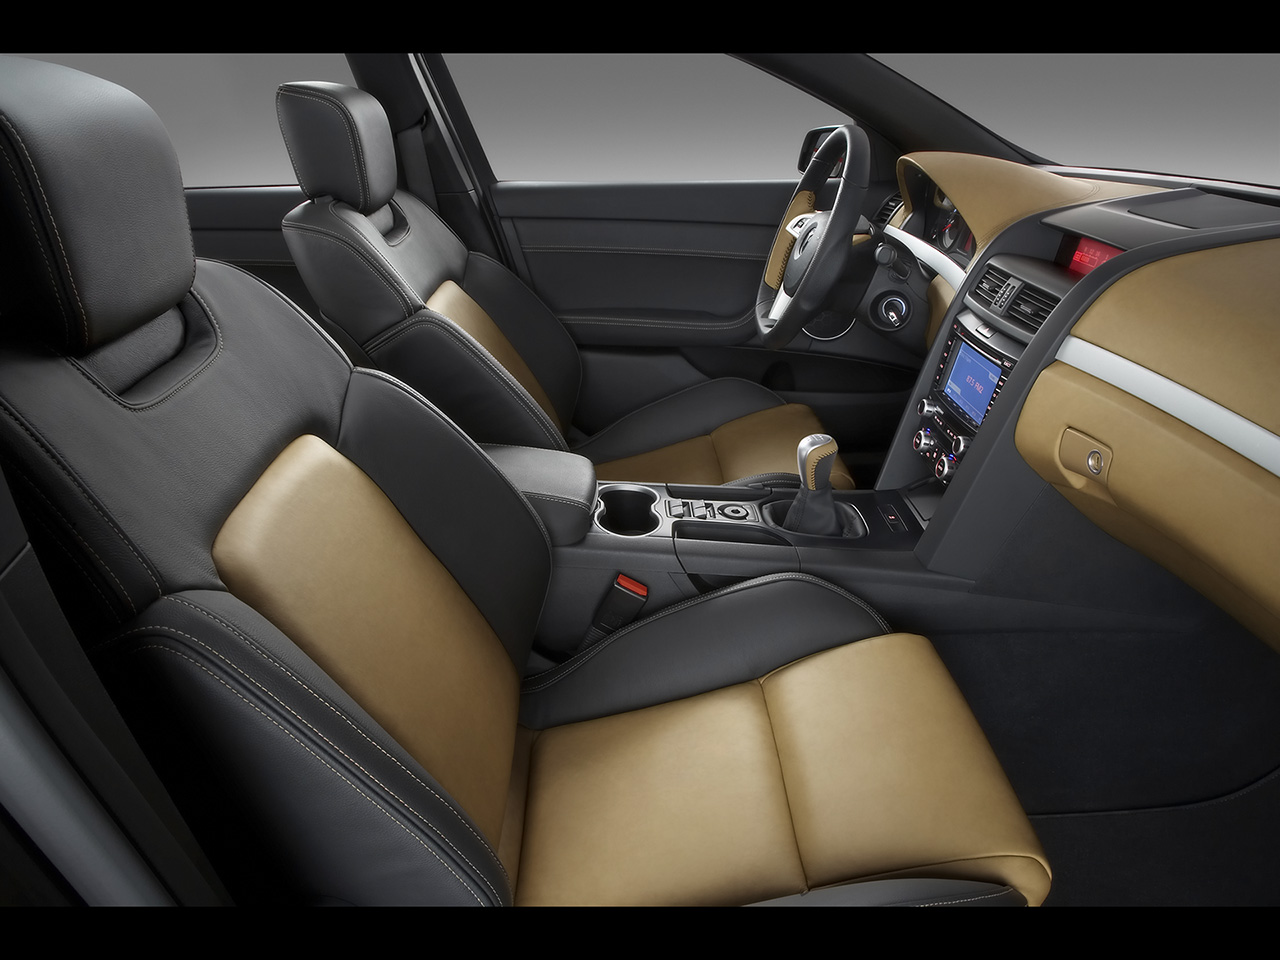 Jax Wax Professional Automotive Interior Detailing Products are designed to give you commercial quality results in less time and to save you money.